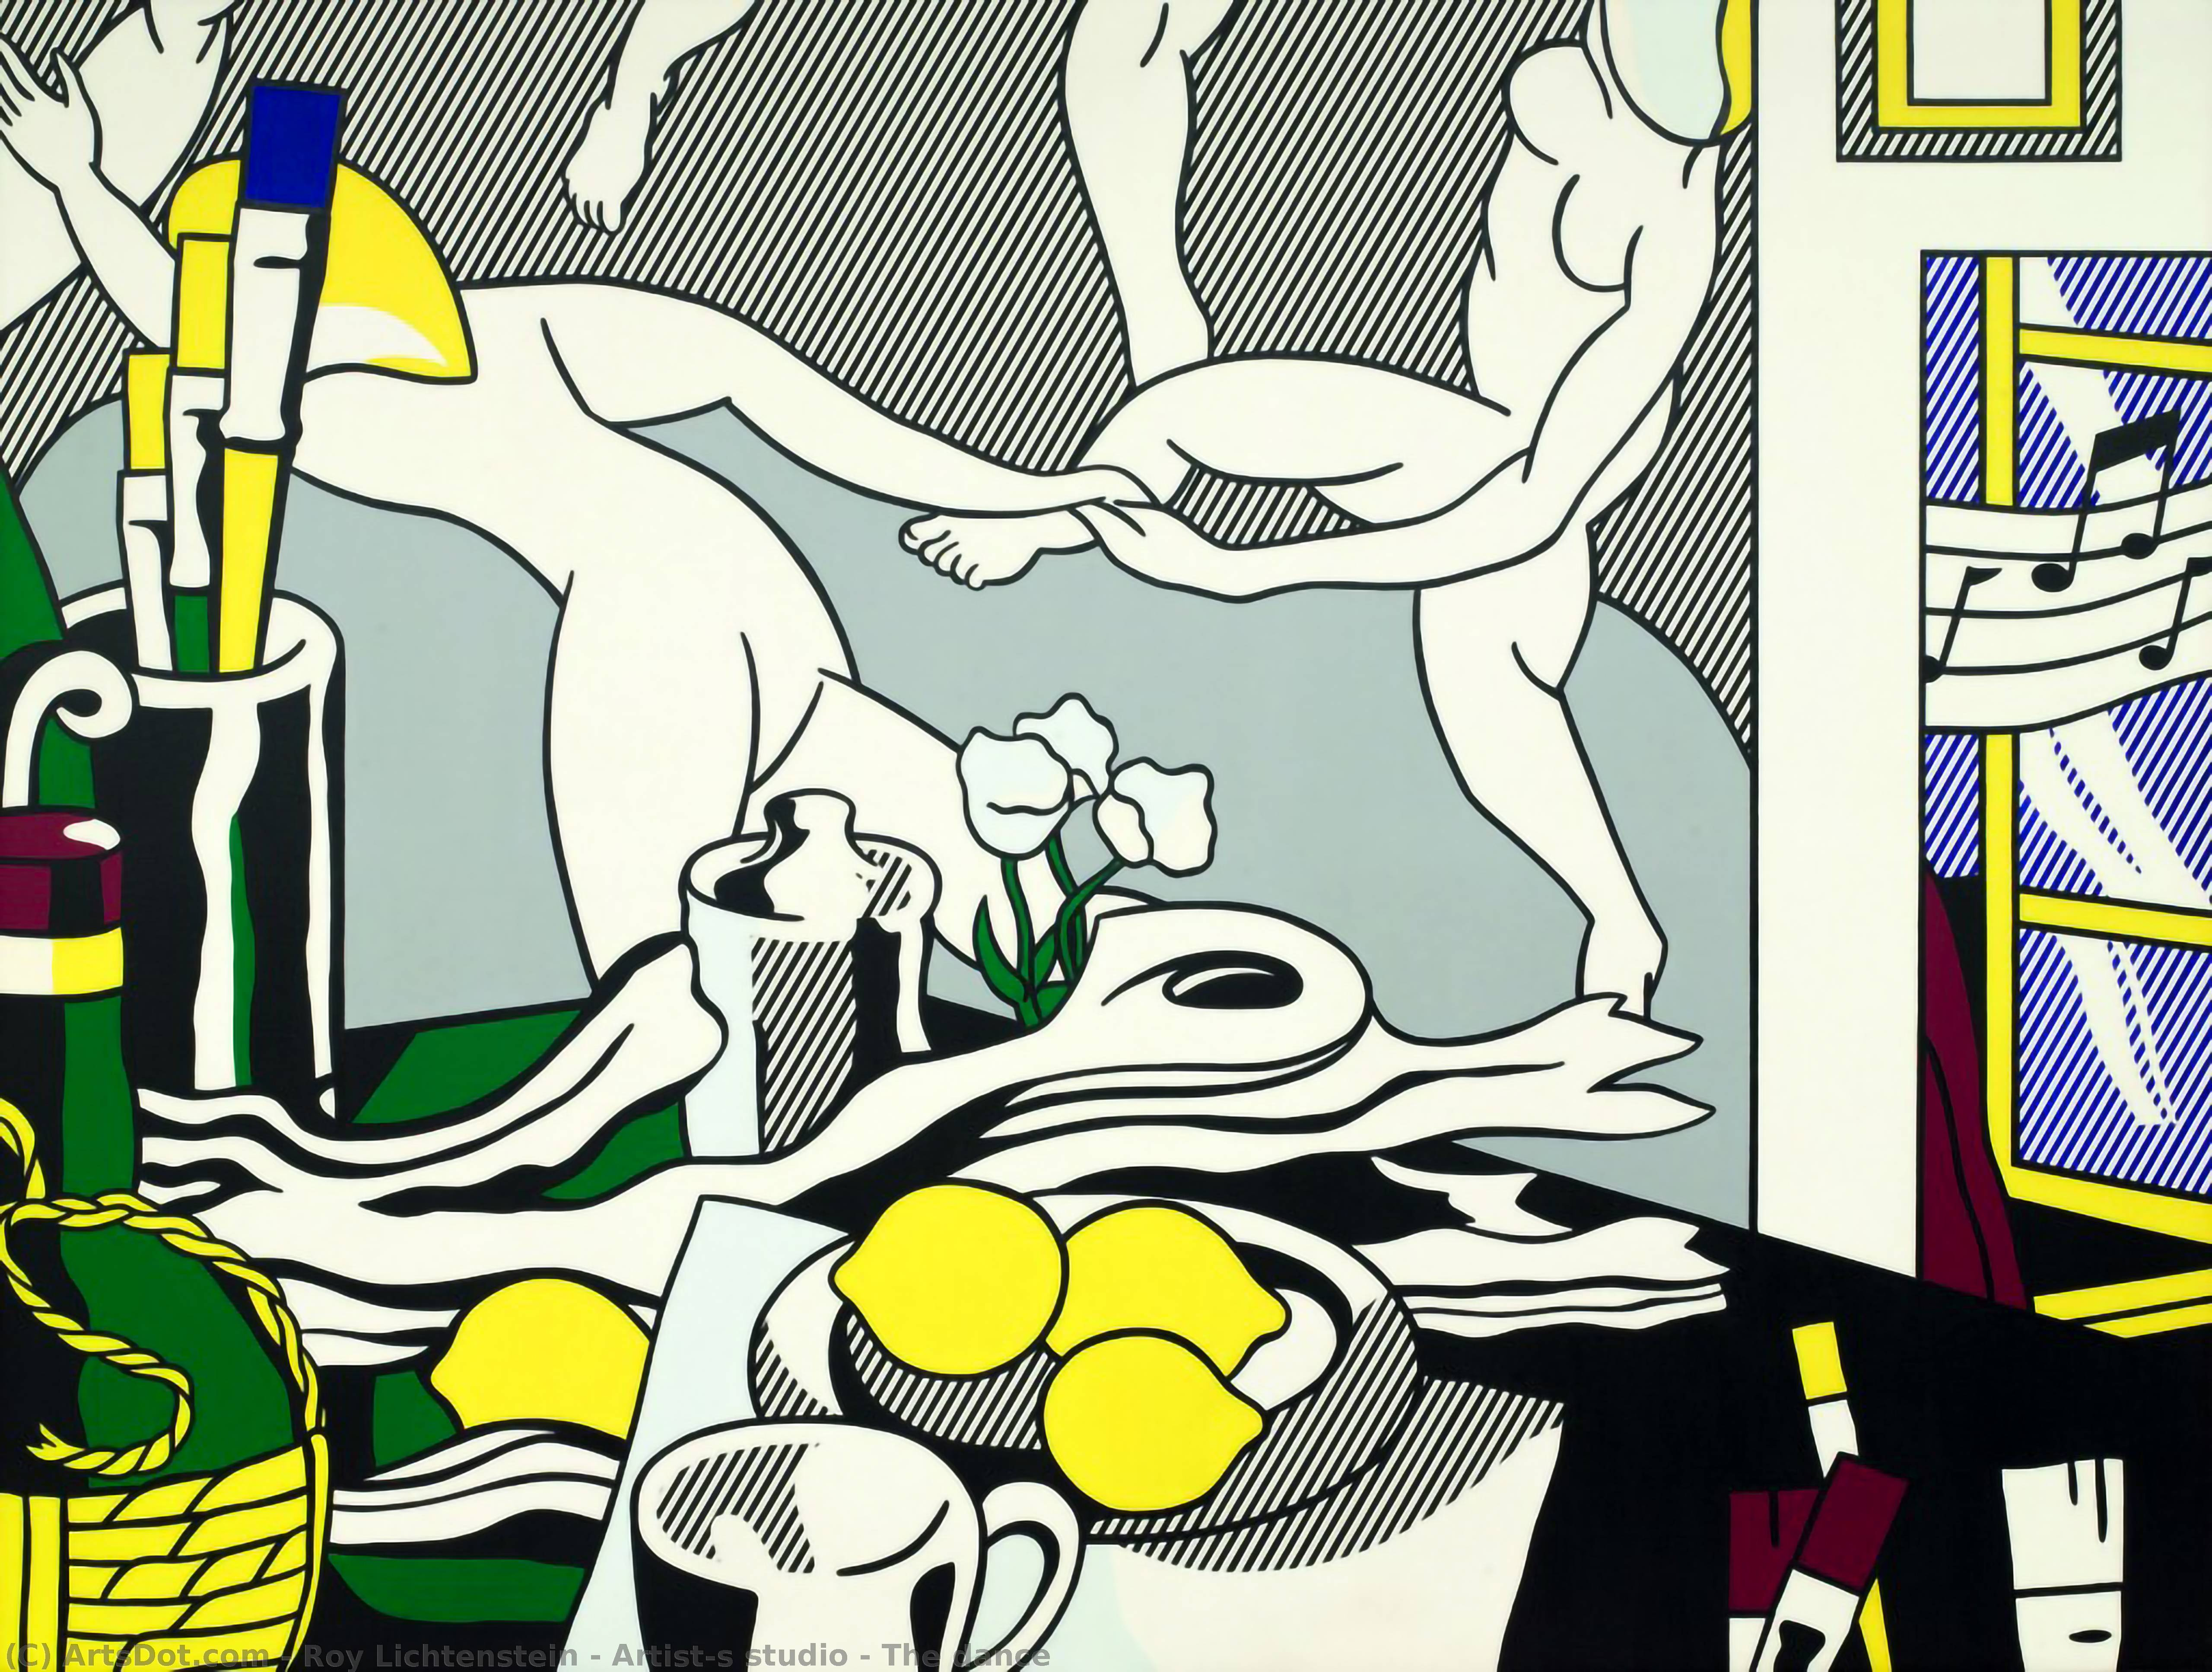 Wikioo.org - The Encyclopedia of Fine Arts - Painting, Artwork by Roy Lichtenstein - Artist's studio - The dance